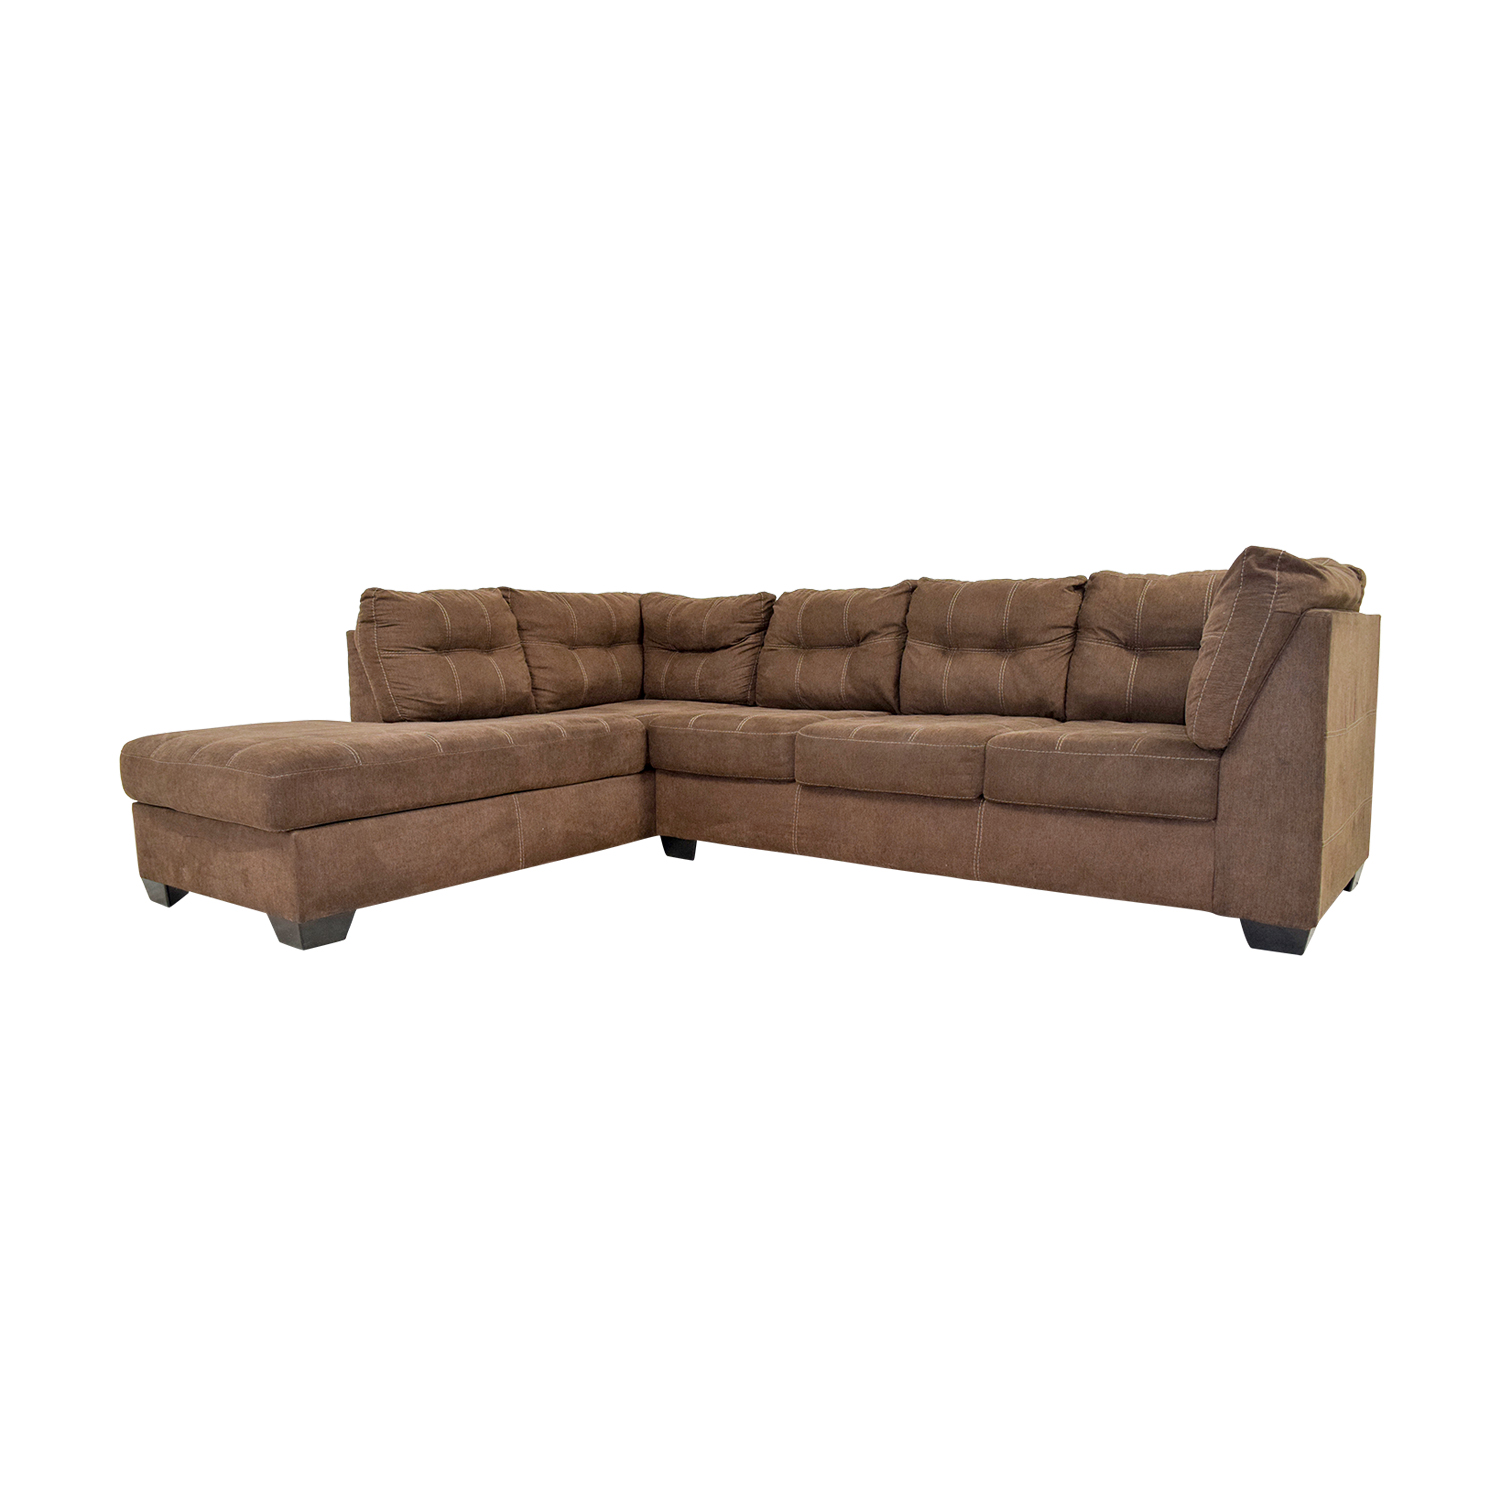 45% OFF Brown L Shaped Chaise Sectional Sofa Sofas